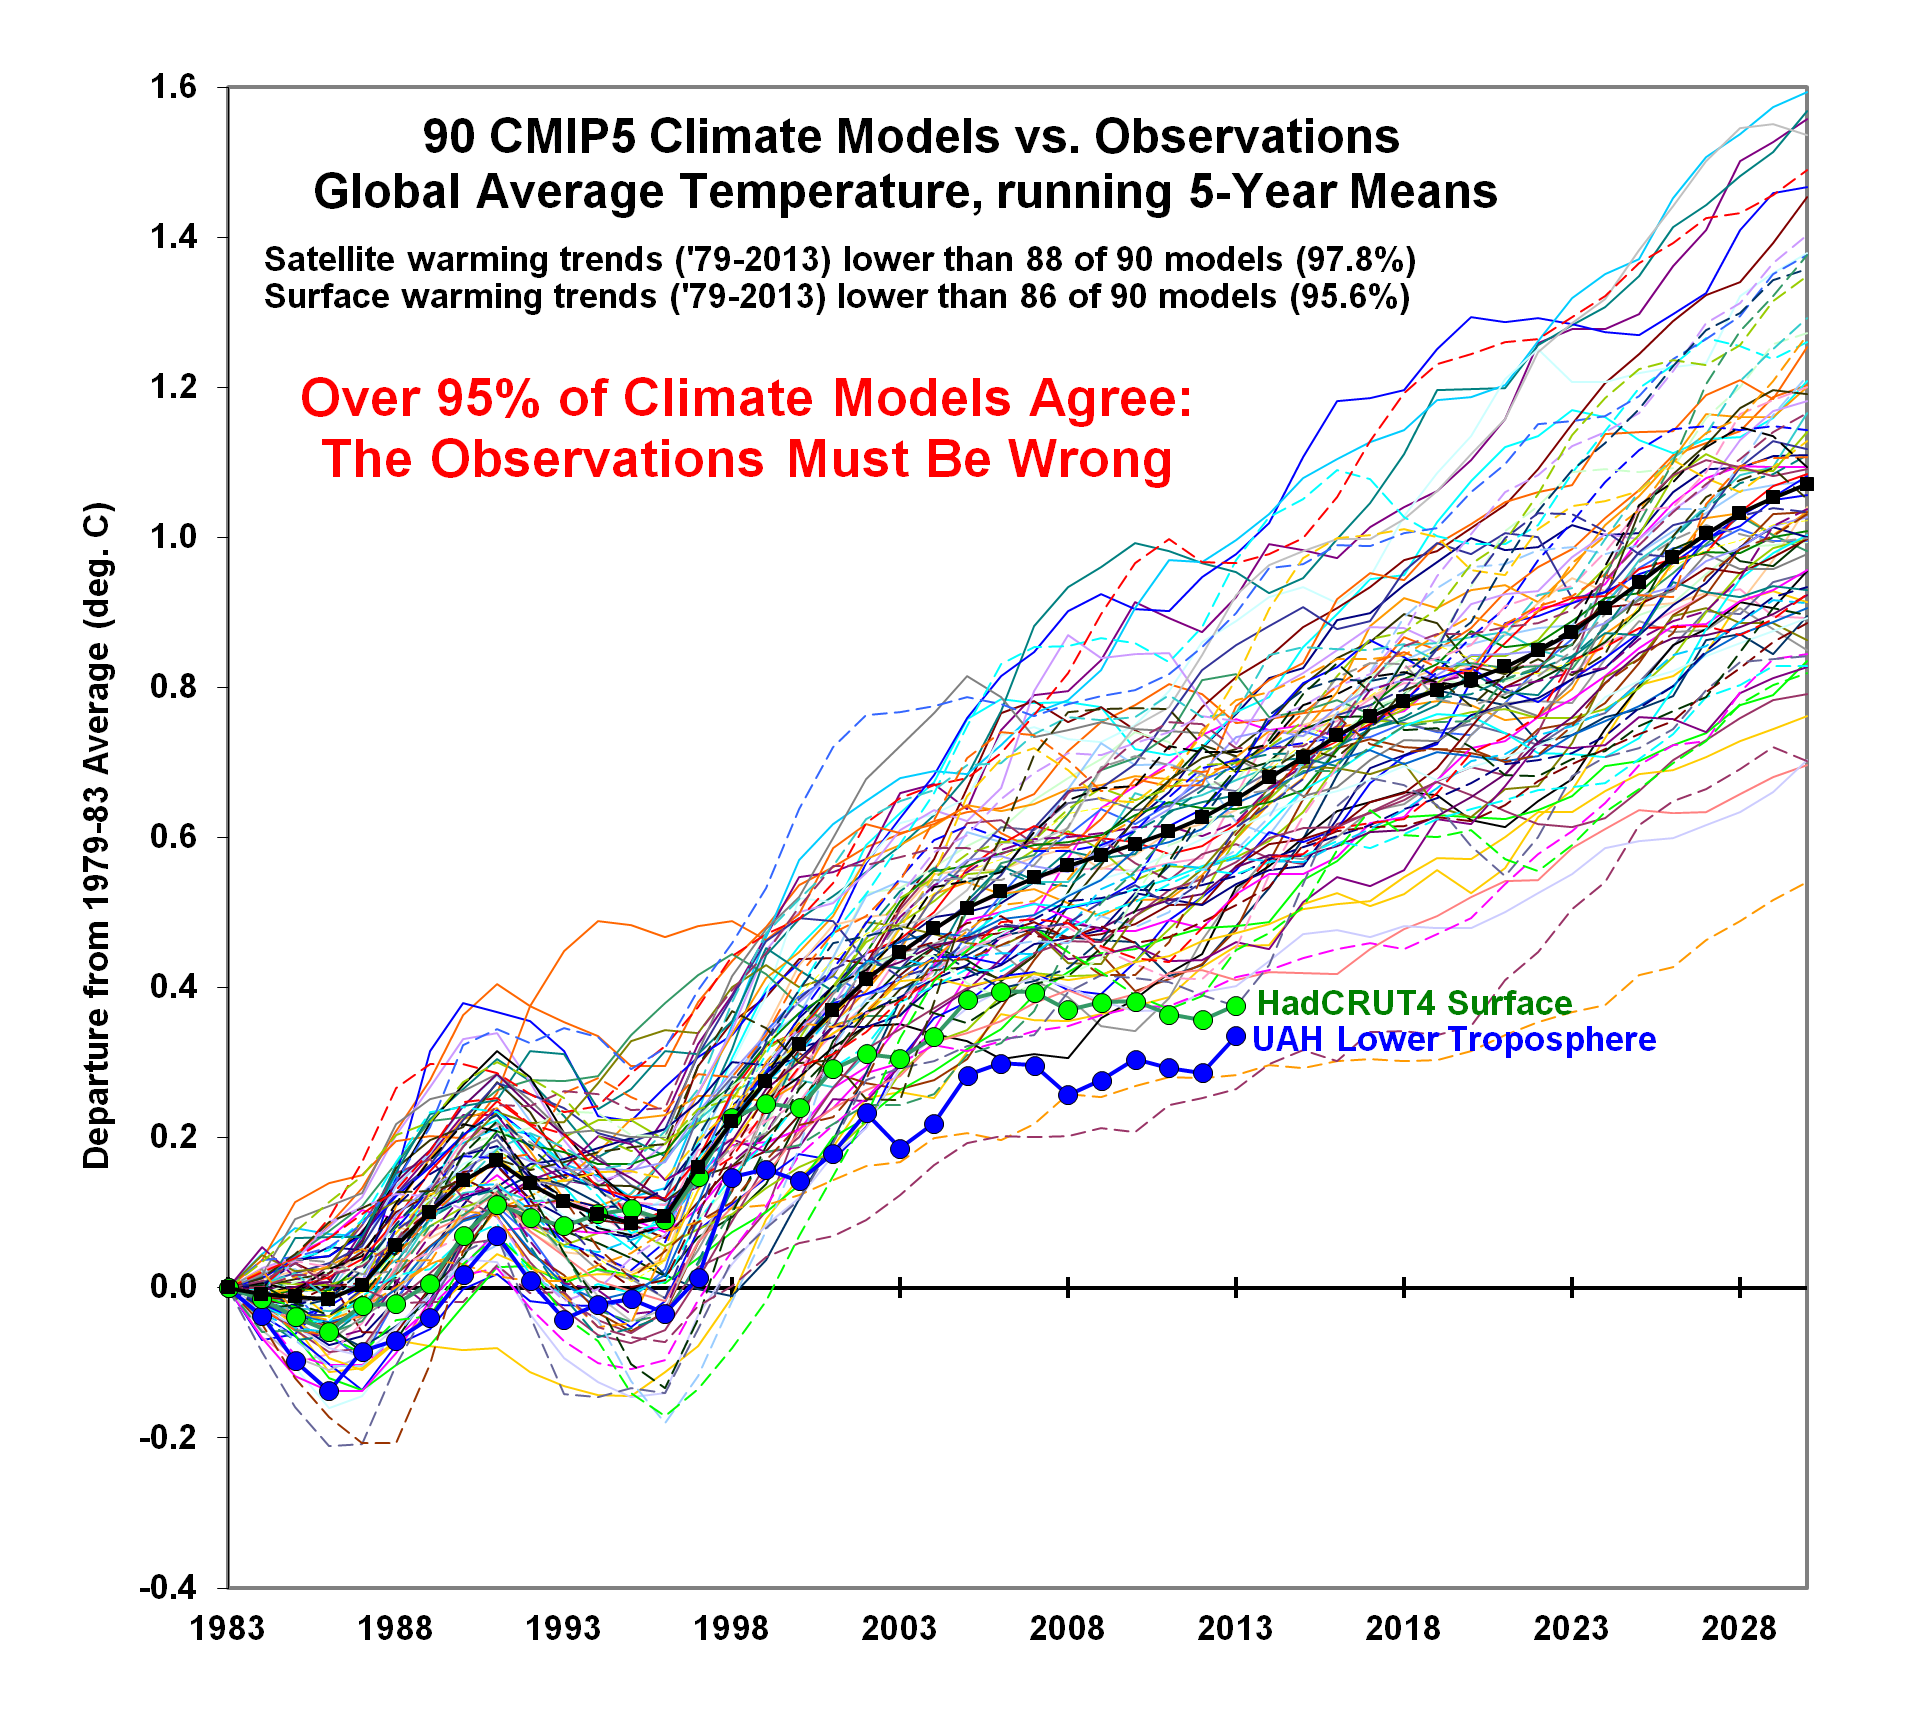 http://www.drroyspencer.com/wp-content/uploads/CMIP5-90-models-global-Tsfc-vs-obs-thru-2013.png